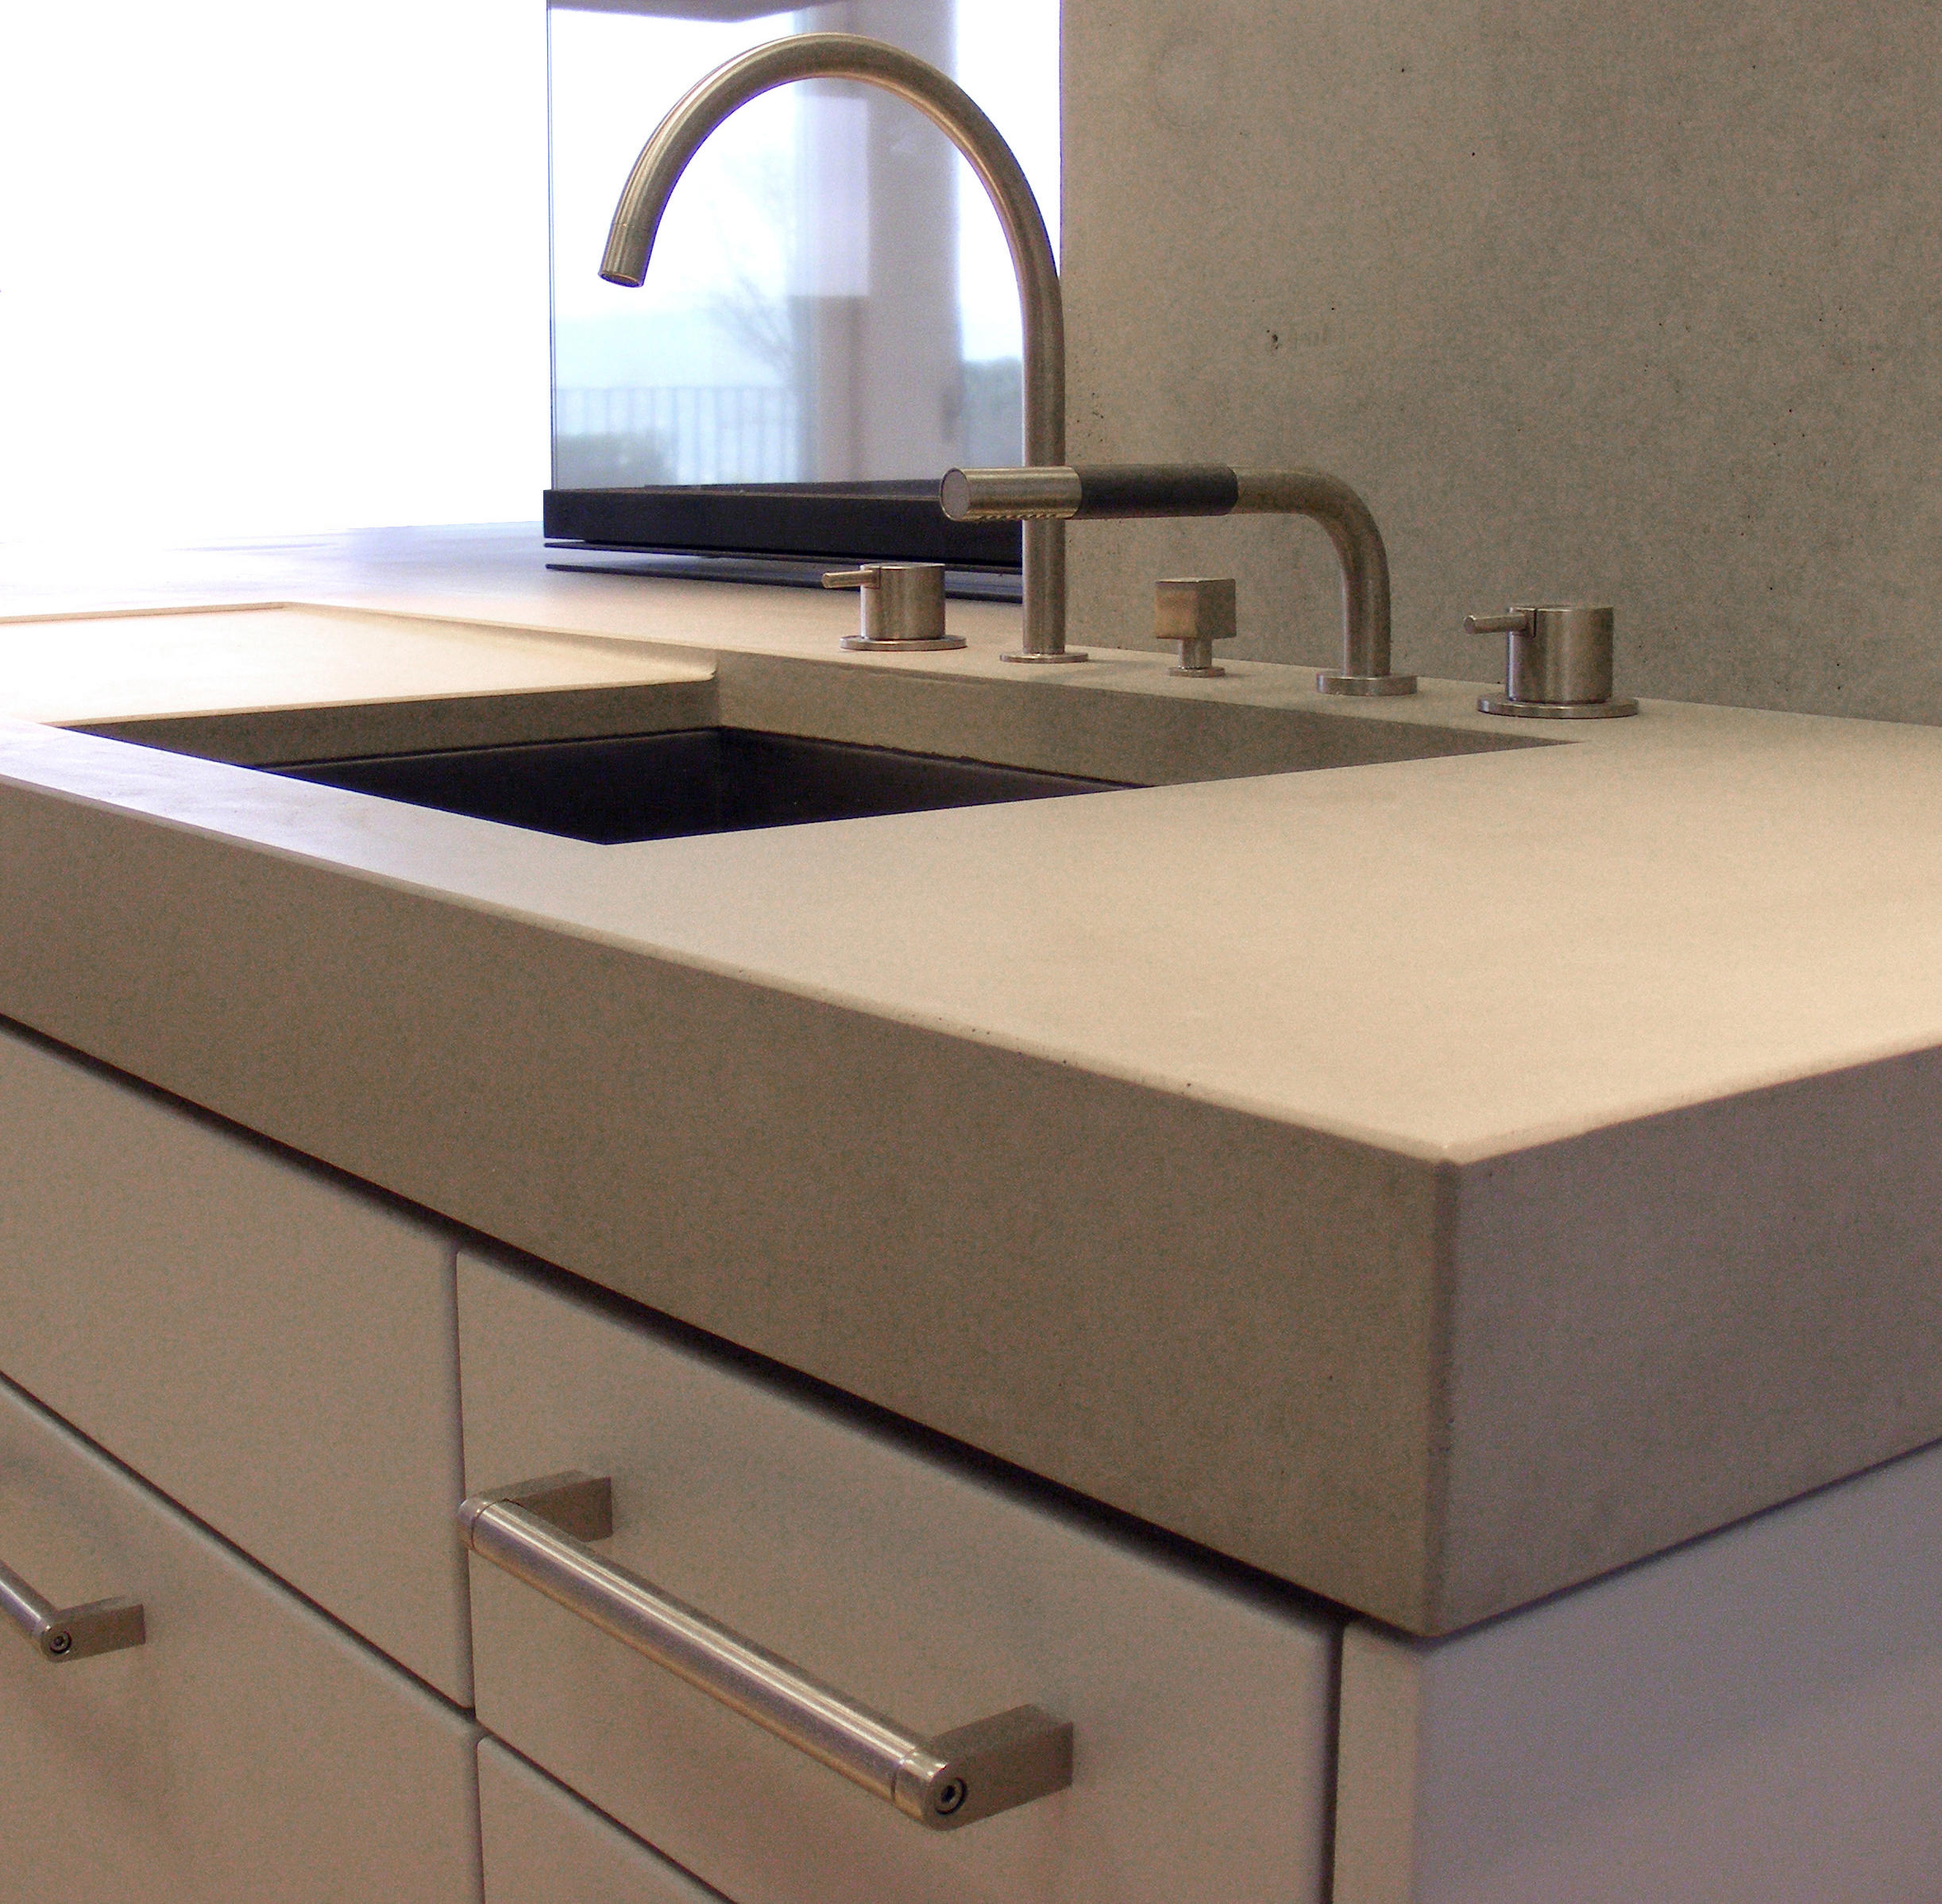 CONCRETE WORKTOP - Countertops from OGGI Beton | Architonic | {Arbeitsplatte aus beton 11}